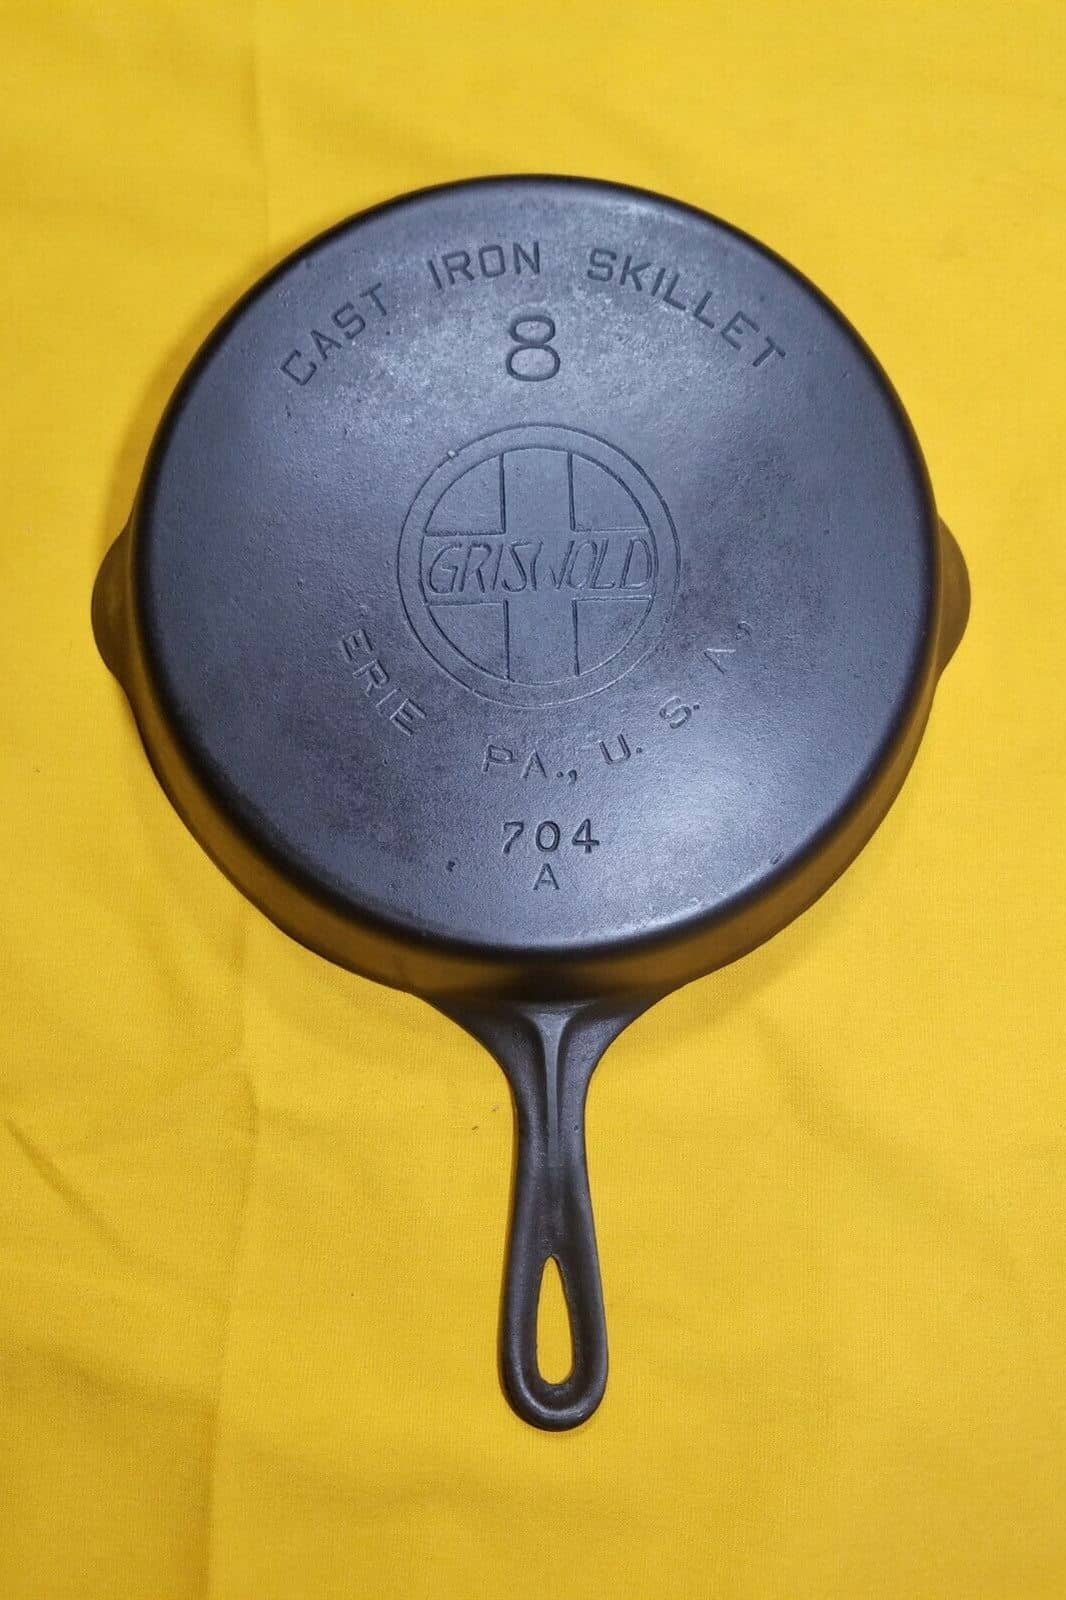 griswold iron skillet